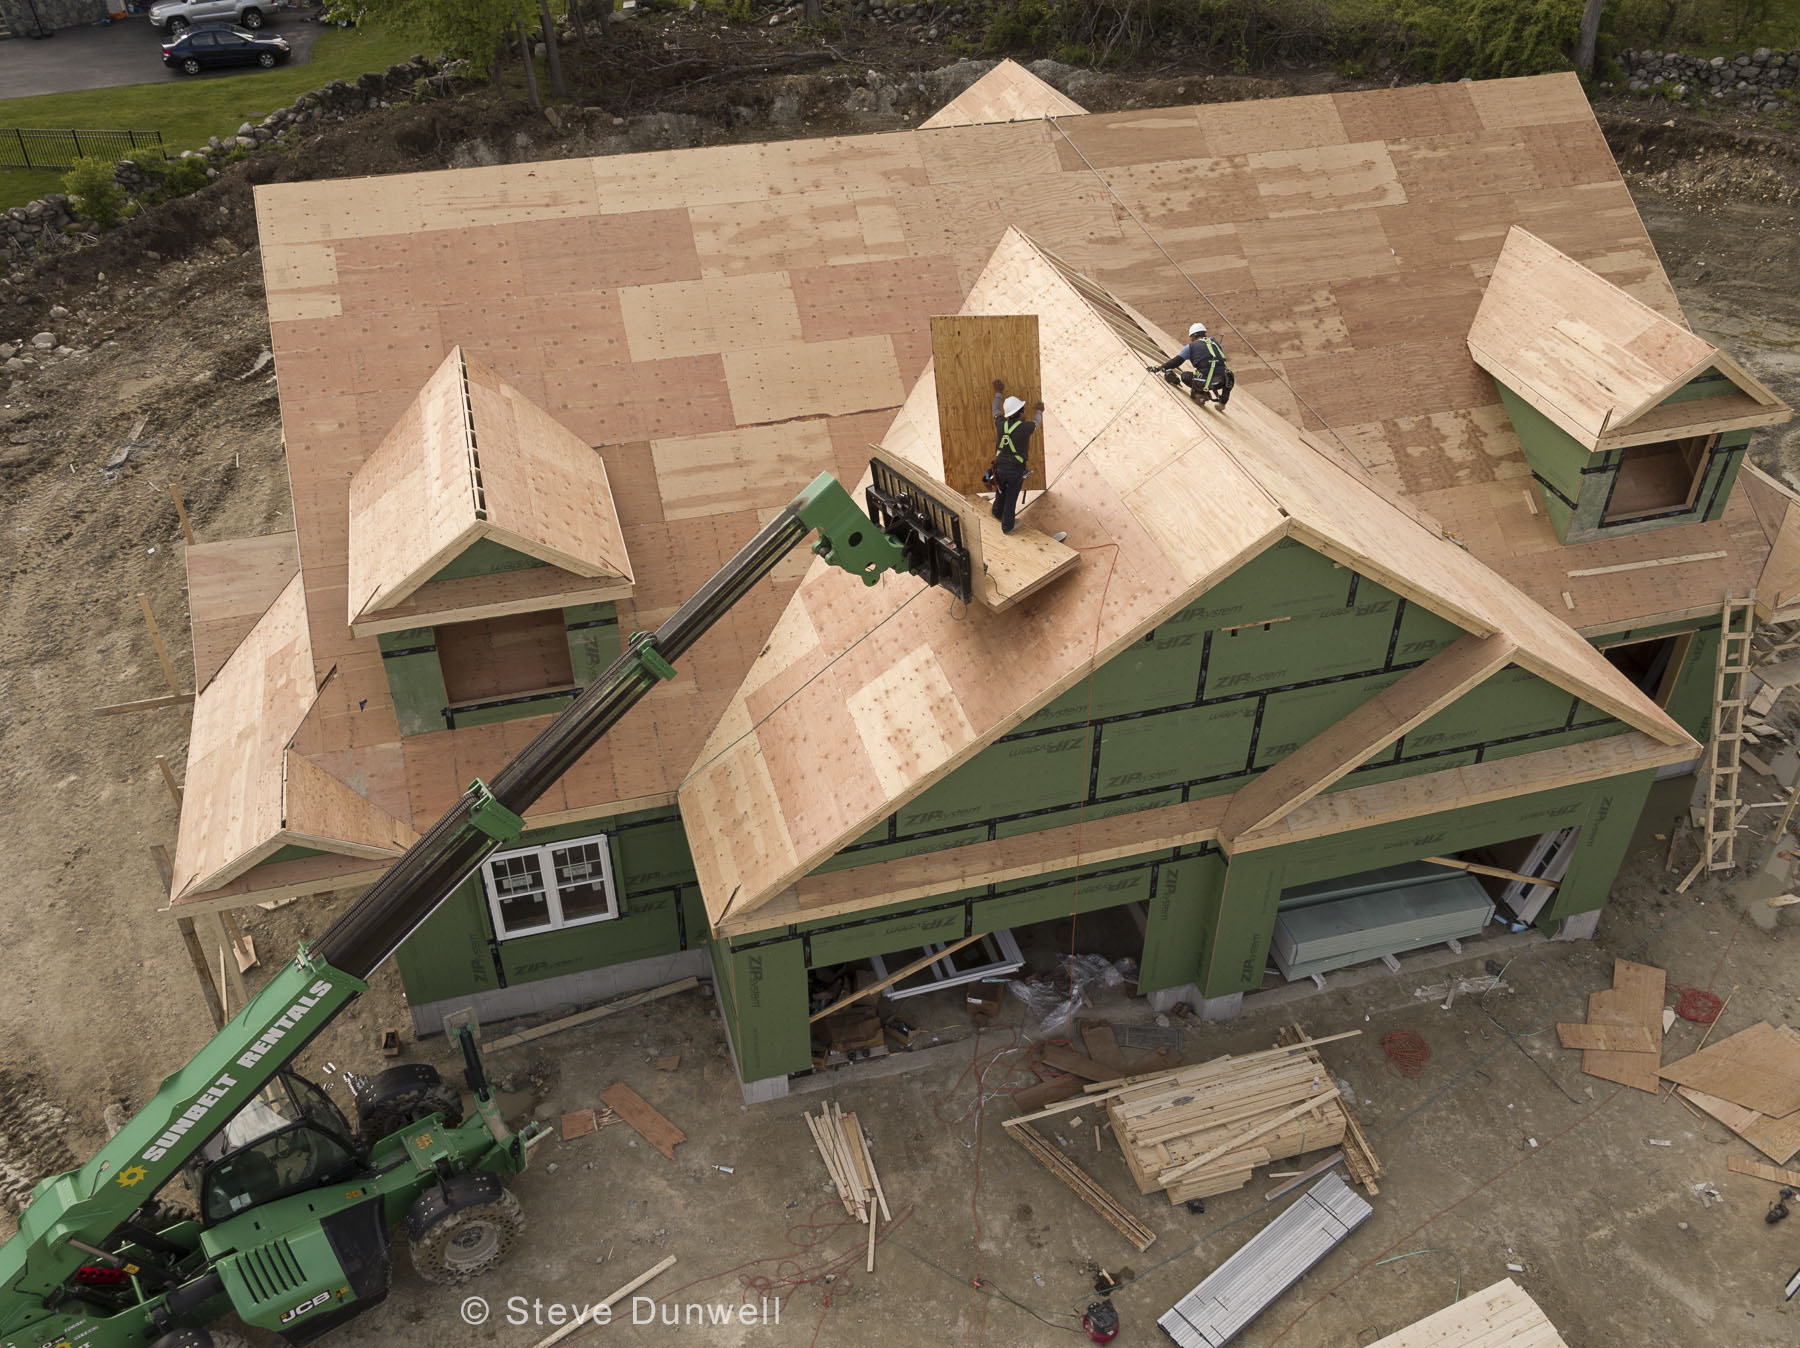 House construction aerial, Dracut, MA